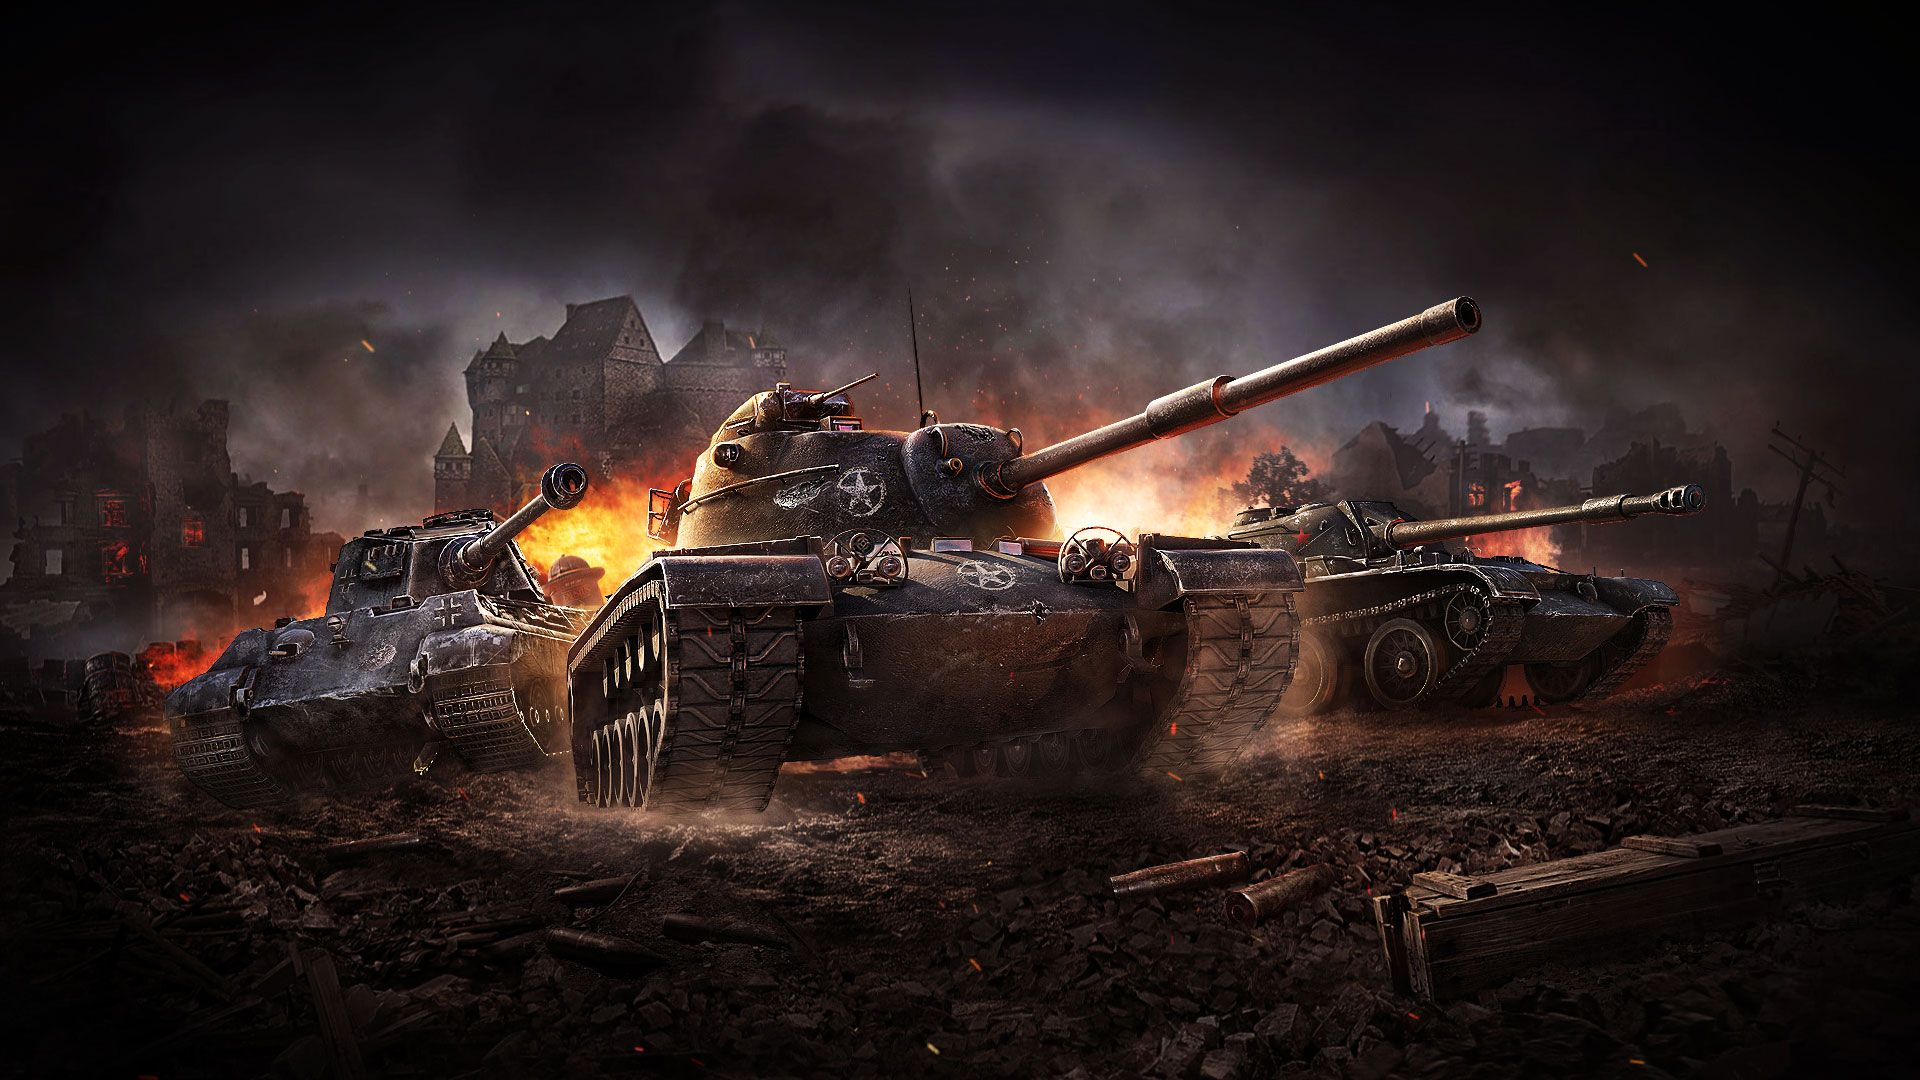 World Of Tanks Live Wallpaper Android Apps On Google Play 1920